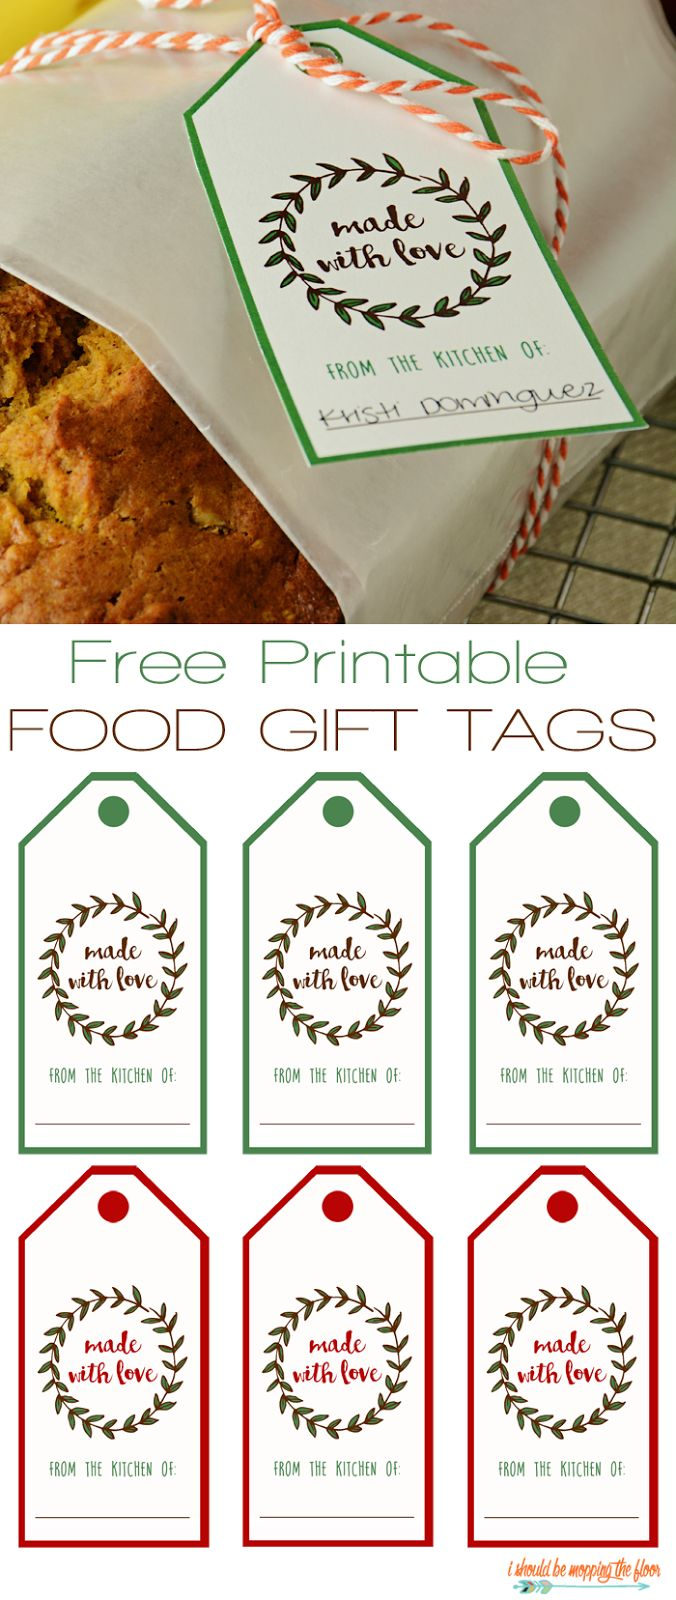 619 best Free Printables images on Pinterest | Free printable, Free ...